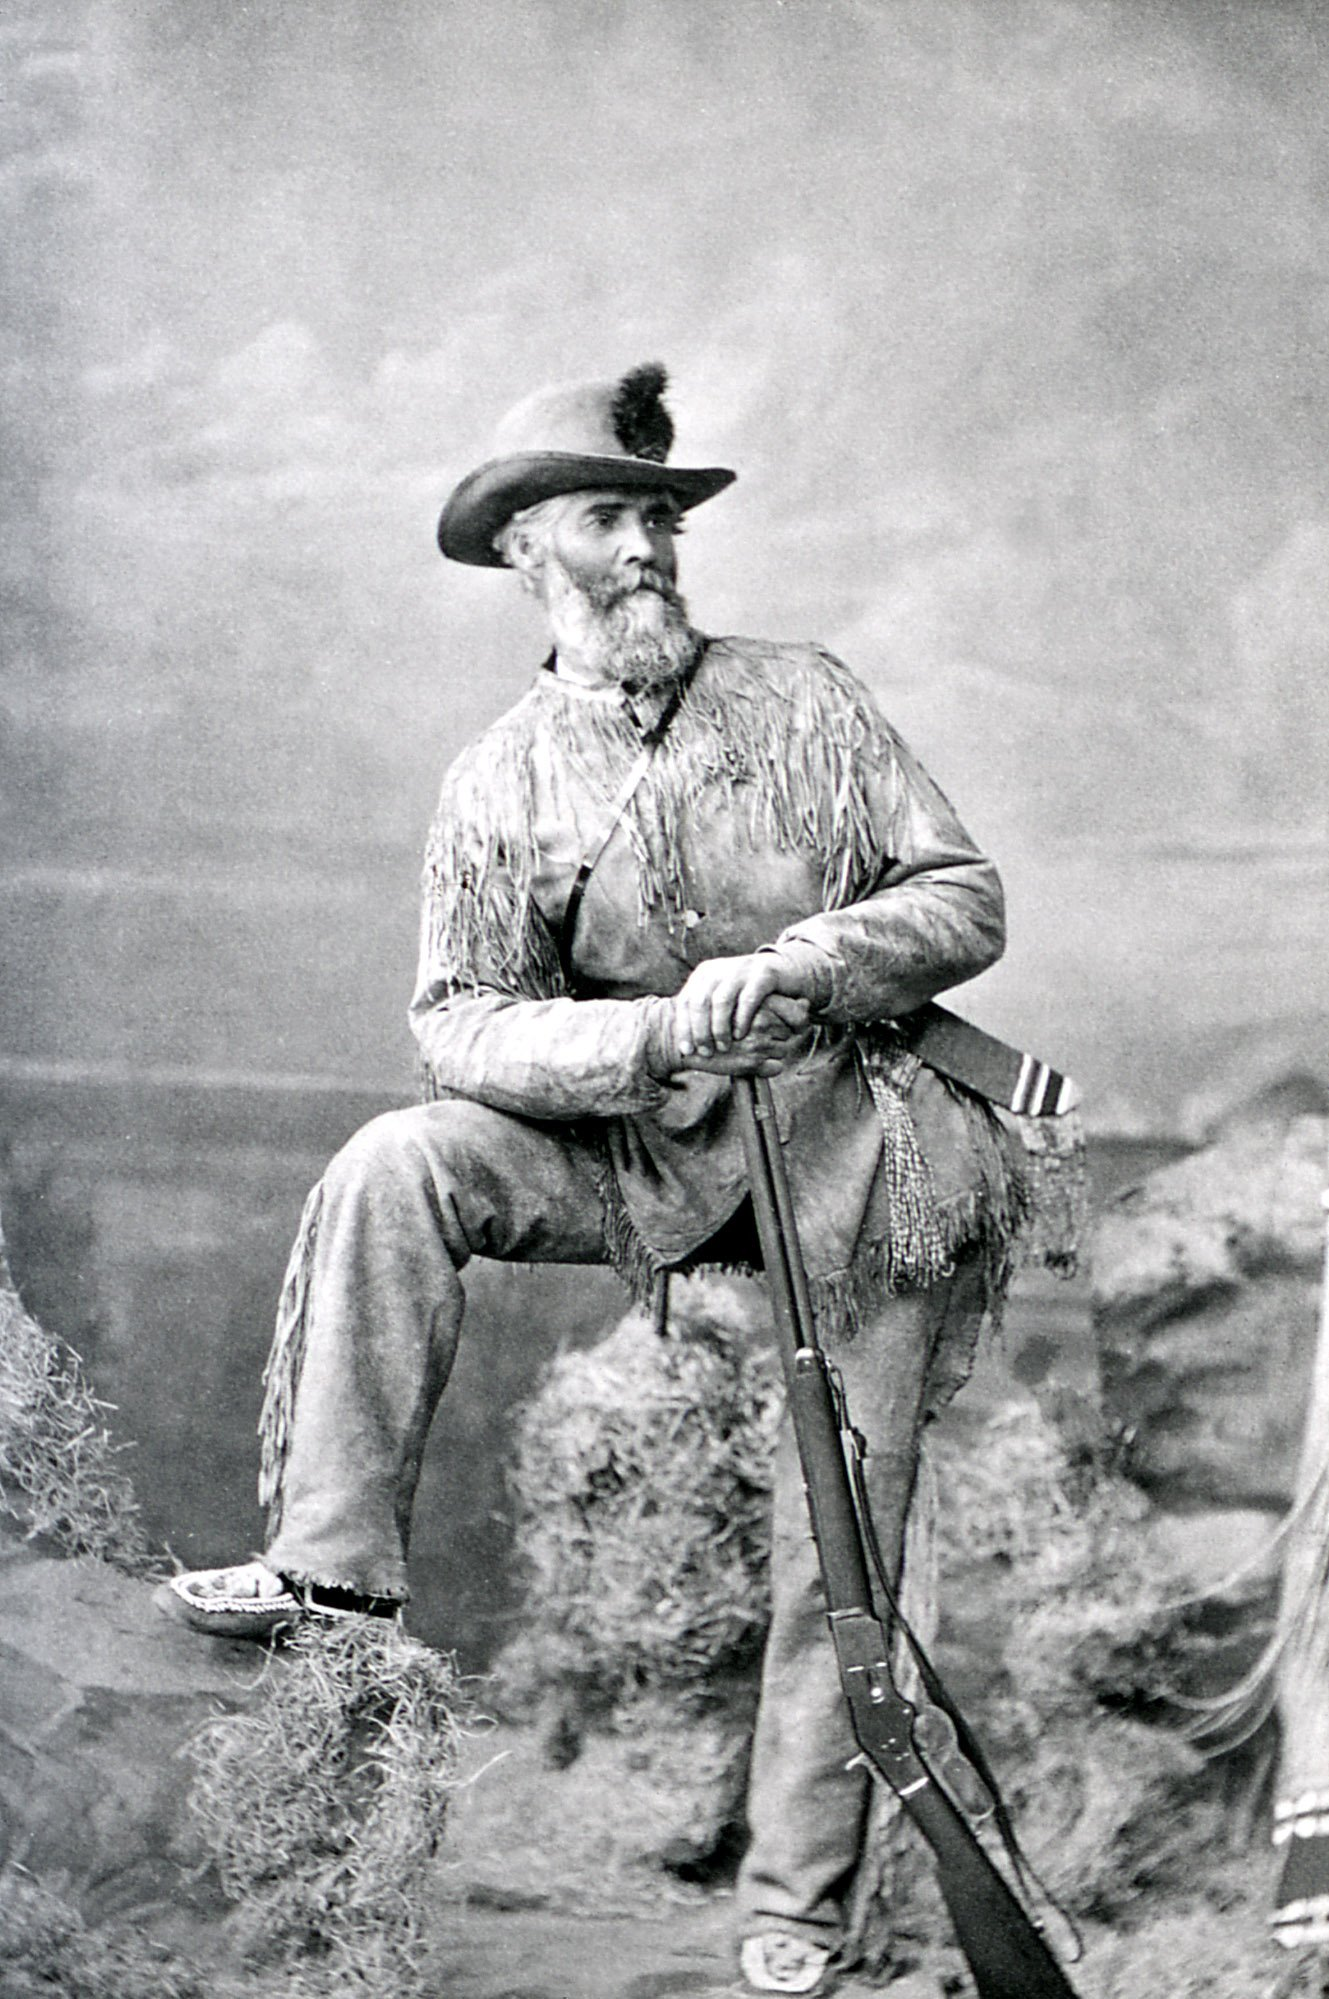 Philetus W. Norris lead the excavation of the Kanawha Valley mounds. A Union Colonel during the Civil War, he went on to be a famous trapper and Yellowstone Park's second superintendent. He died in 1885, not long after the Criel excavation.